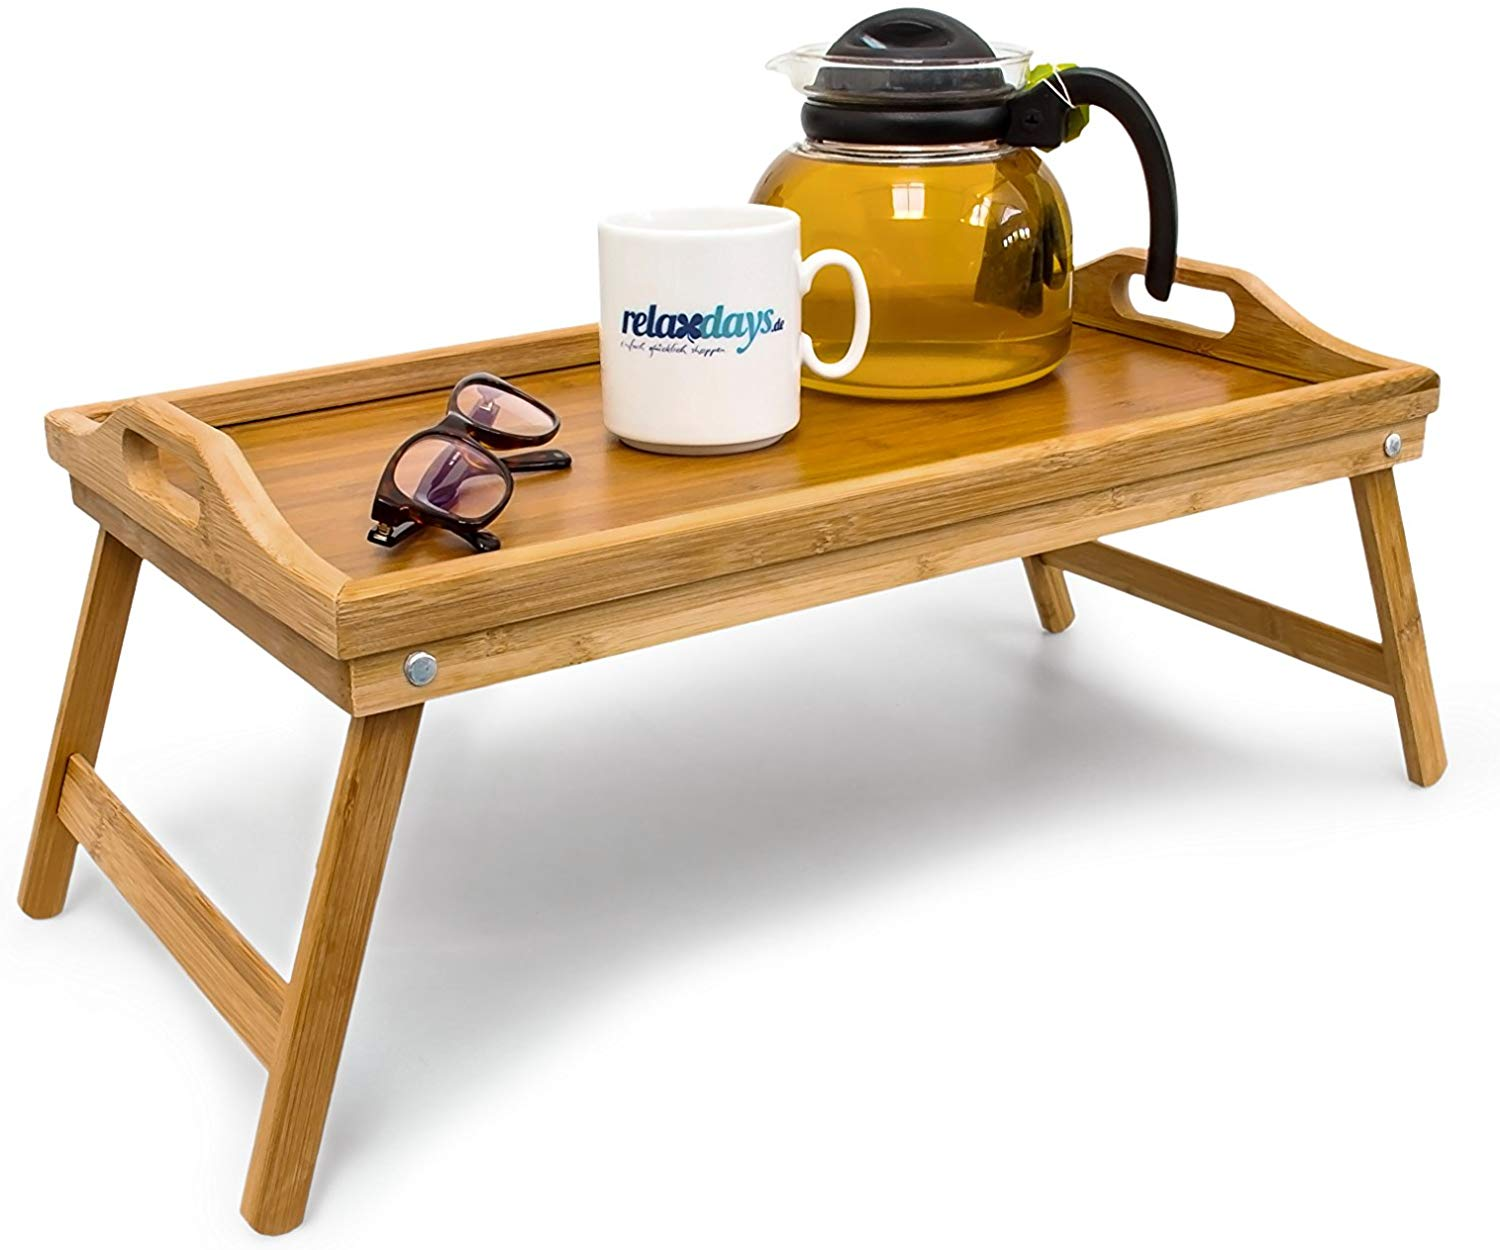 Relaxdays Bamboo Wooden Breakfast in Bed Tray, 21.5 x 47 x 27 cm